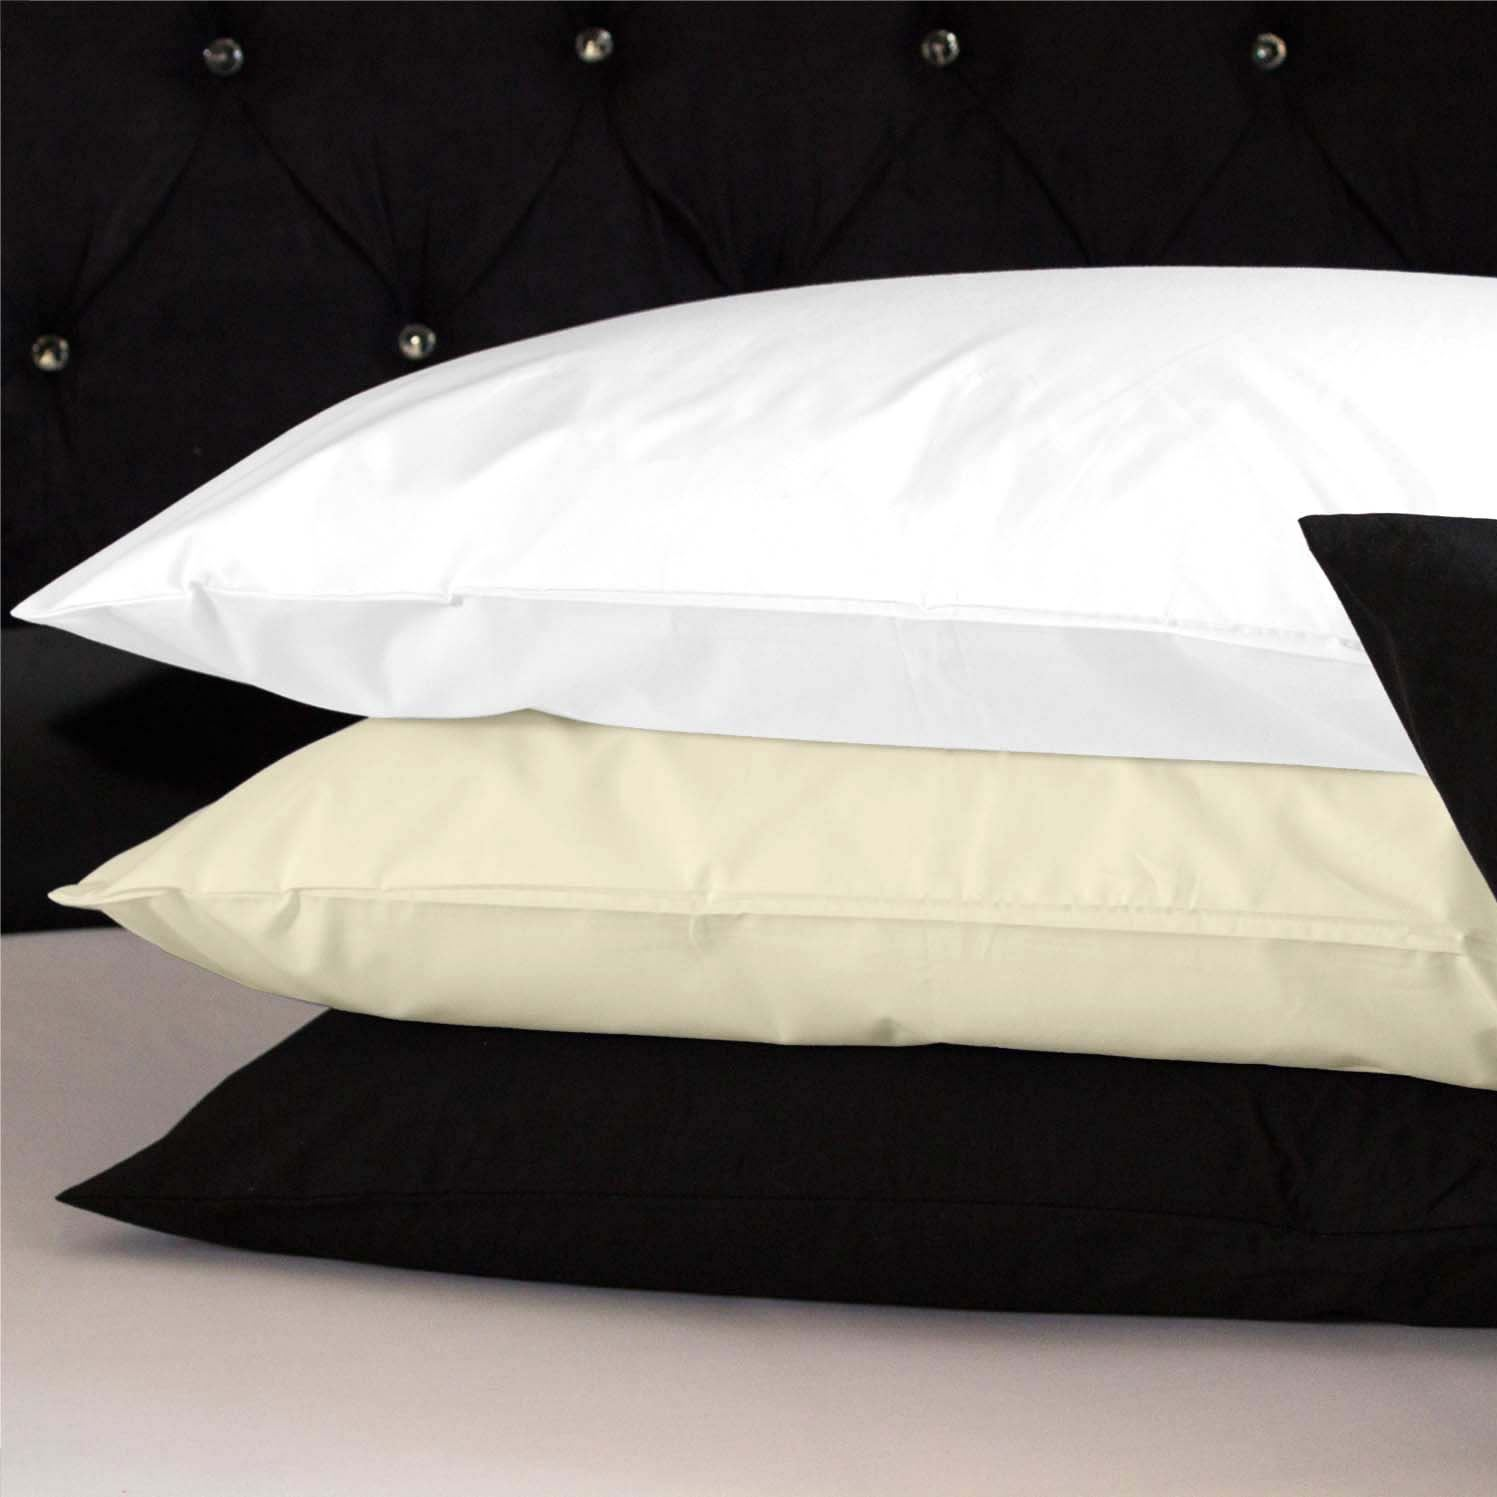 100 cotton fitted bed sheets pillow cases single double king size bedding ebay. Black Bedroom Furniture Sets. Home Design Ideas